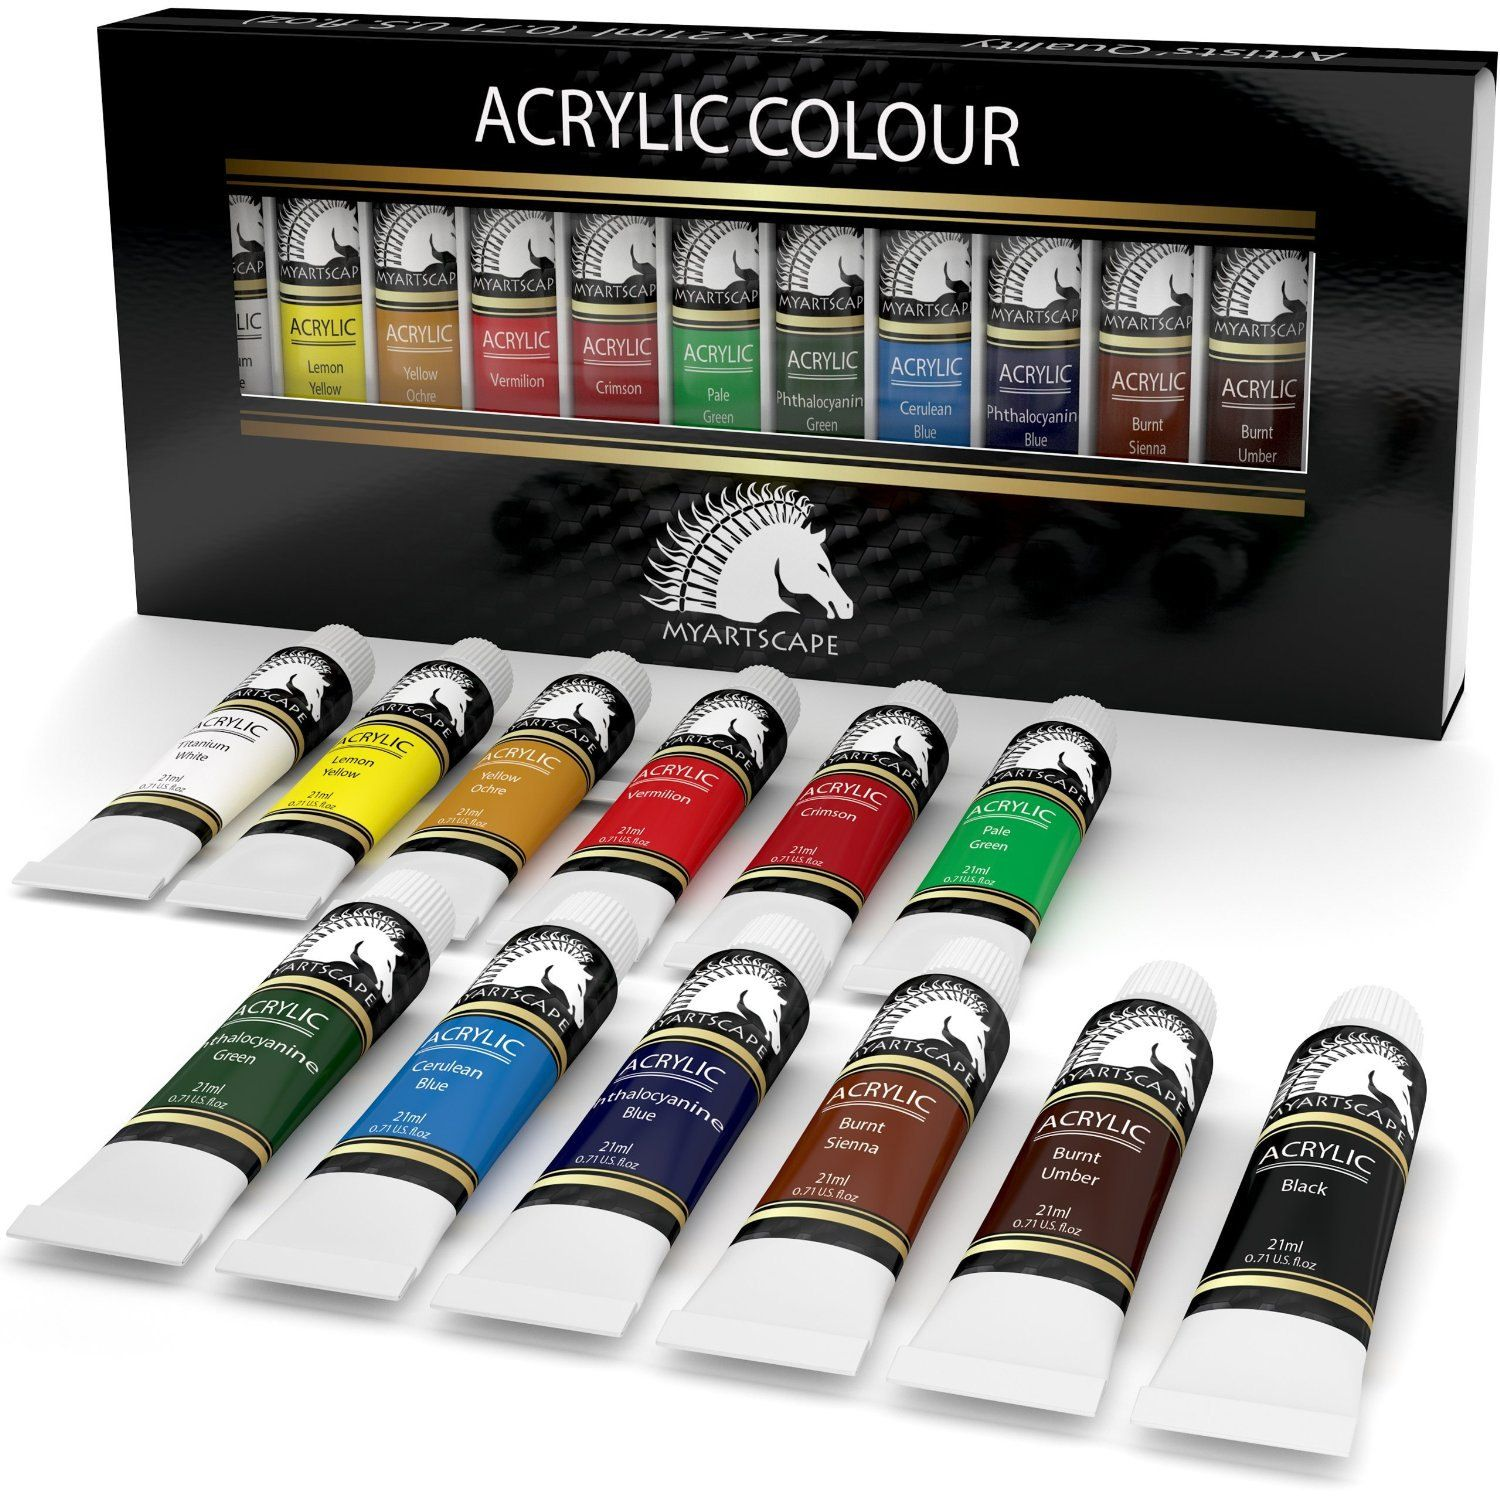 22+ Acrylic craft paint set ideas in 2021